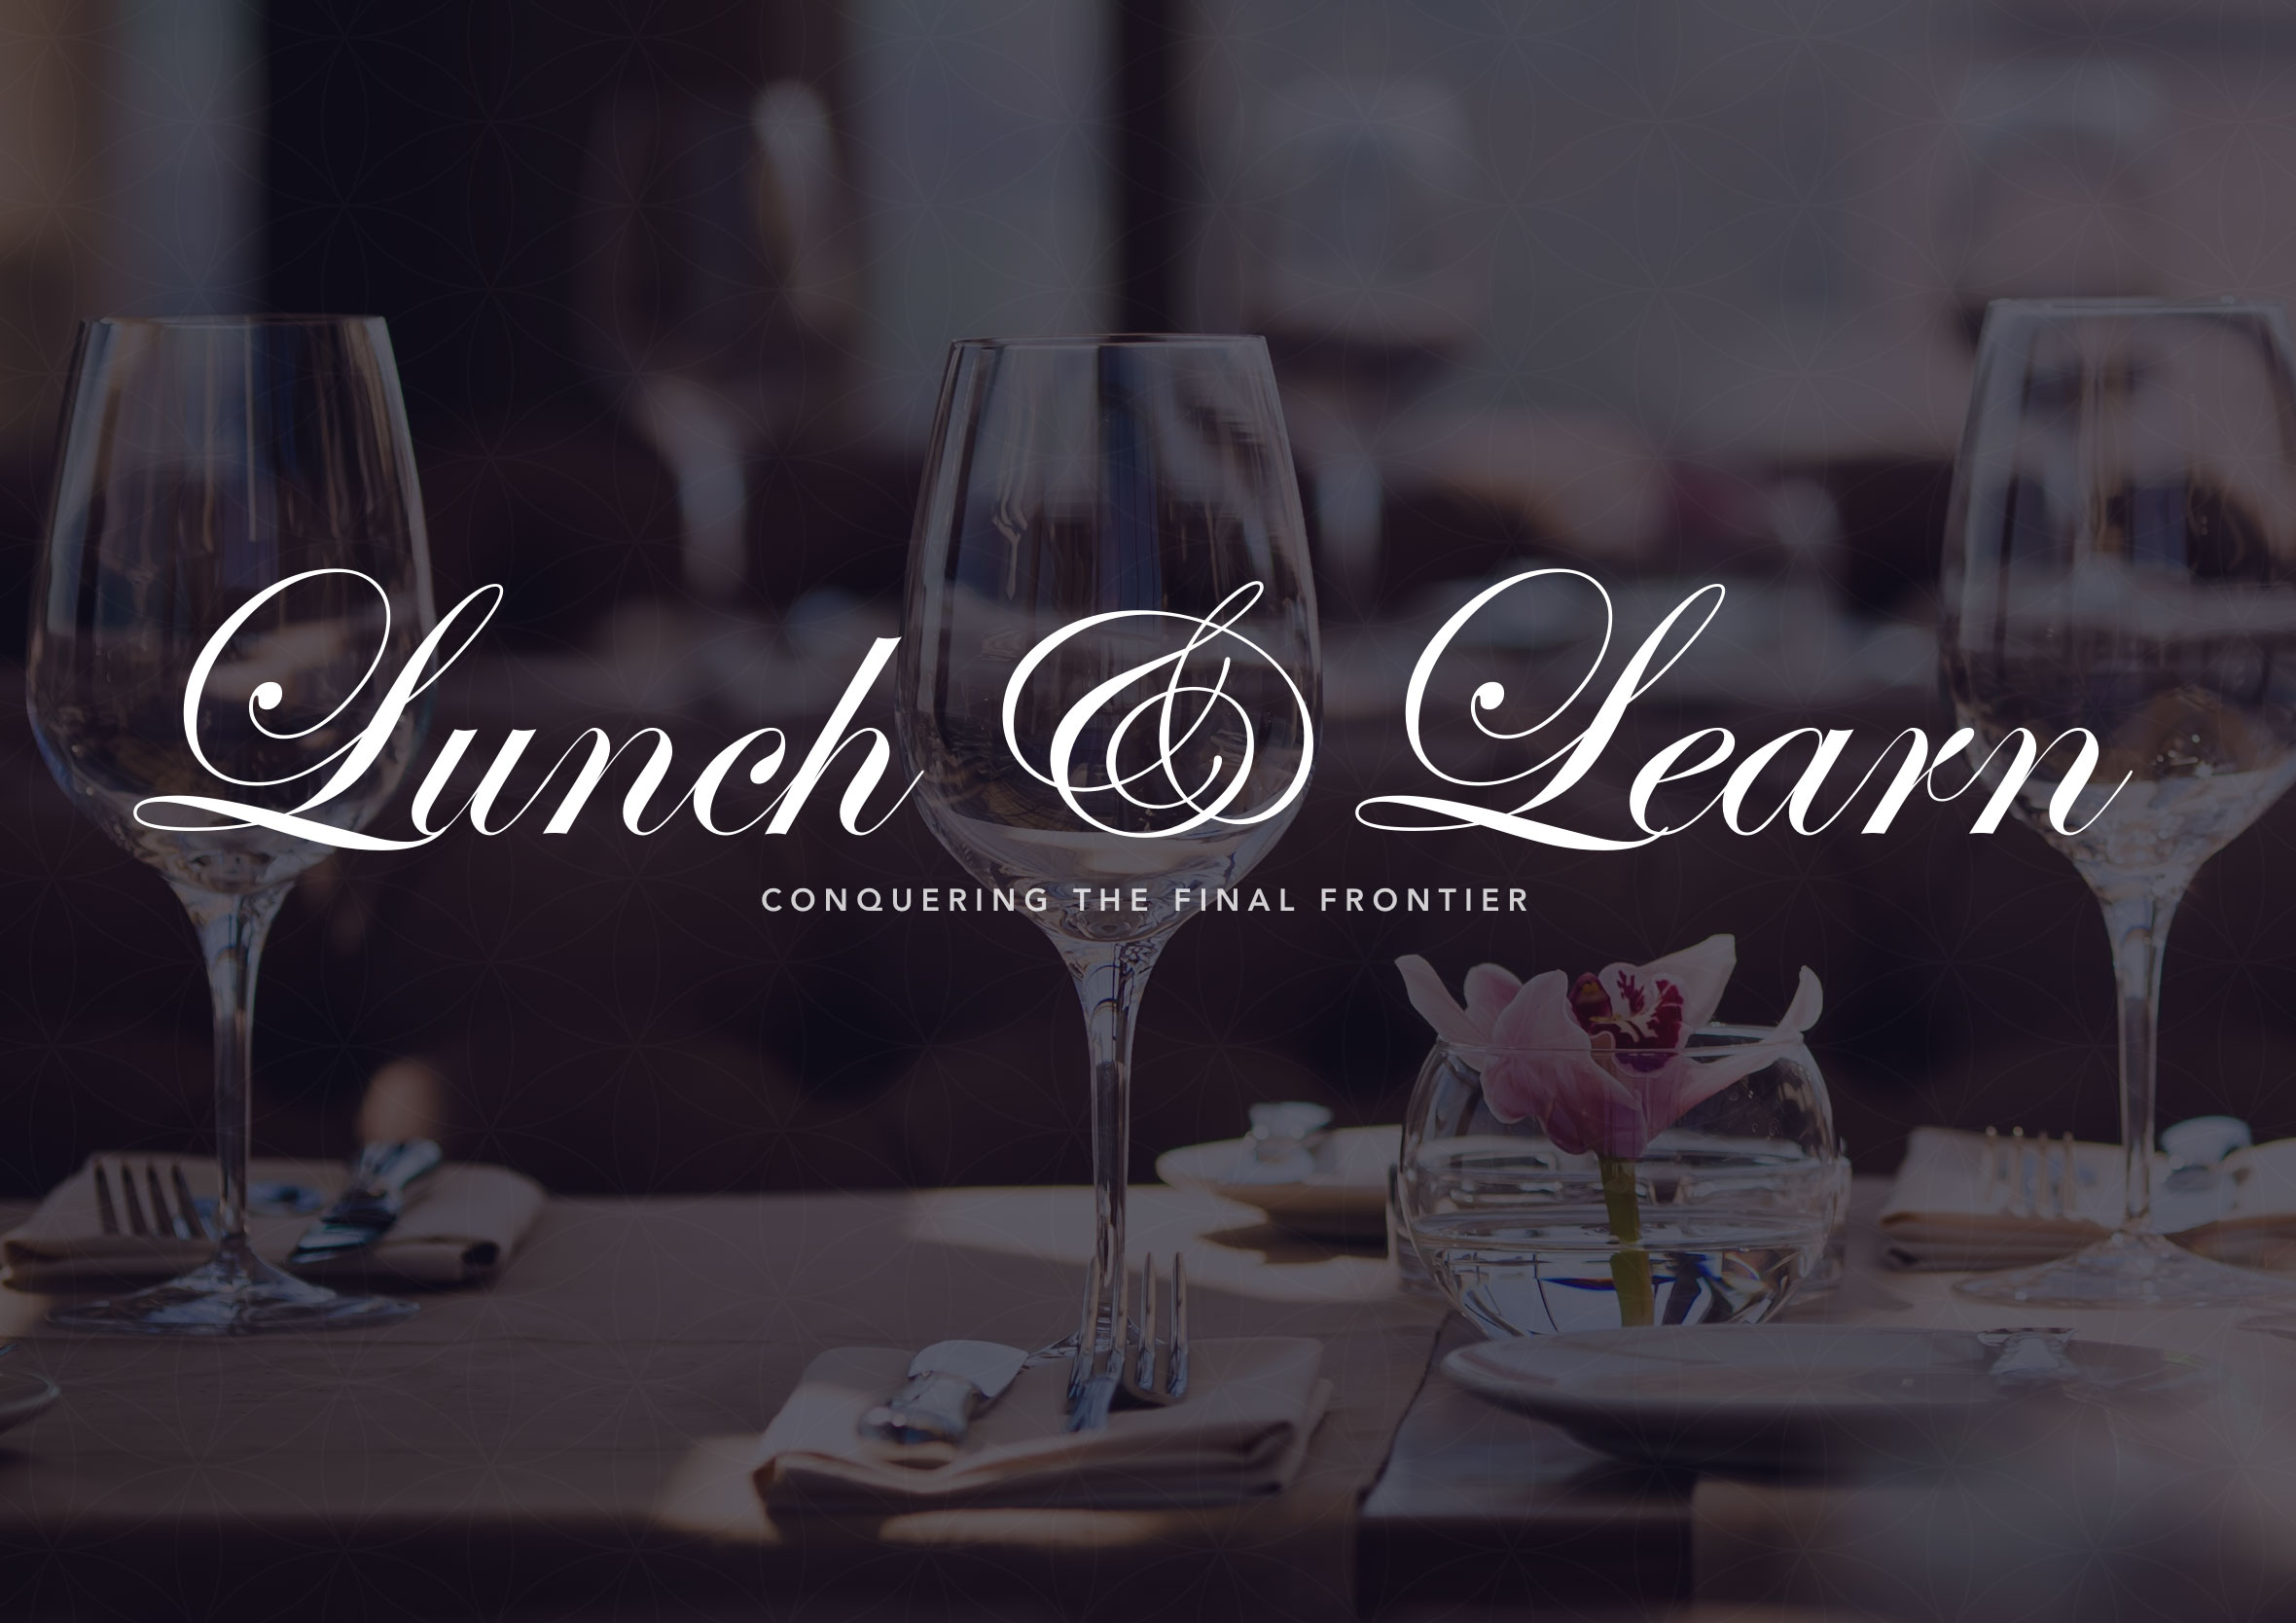 CDP executive lunch invitation lunch and learn